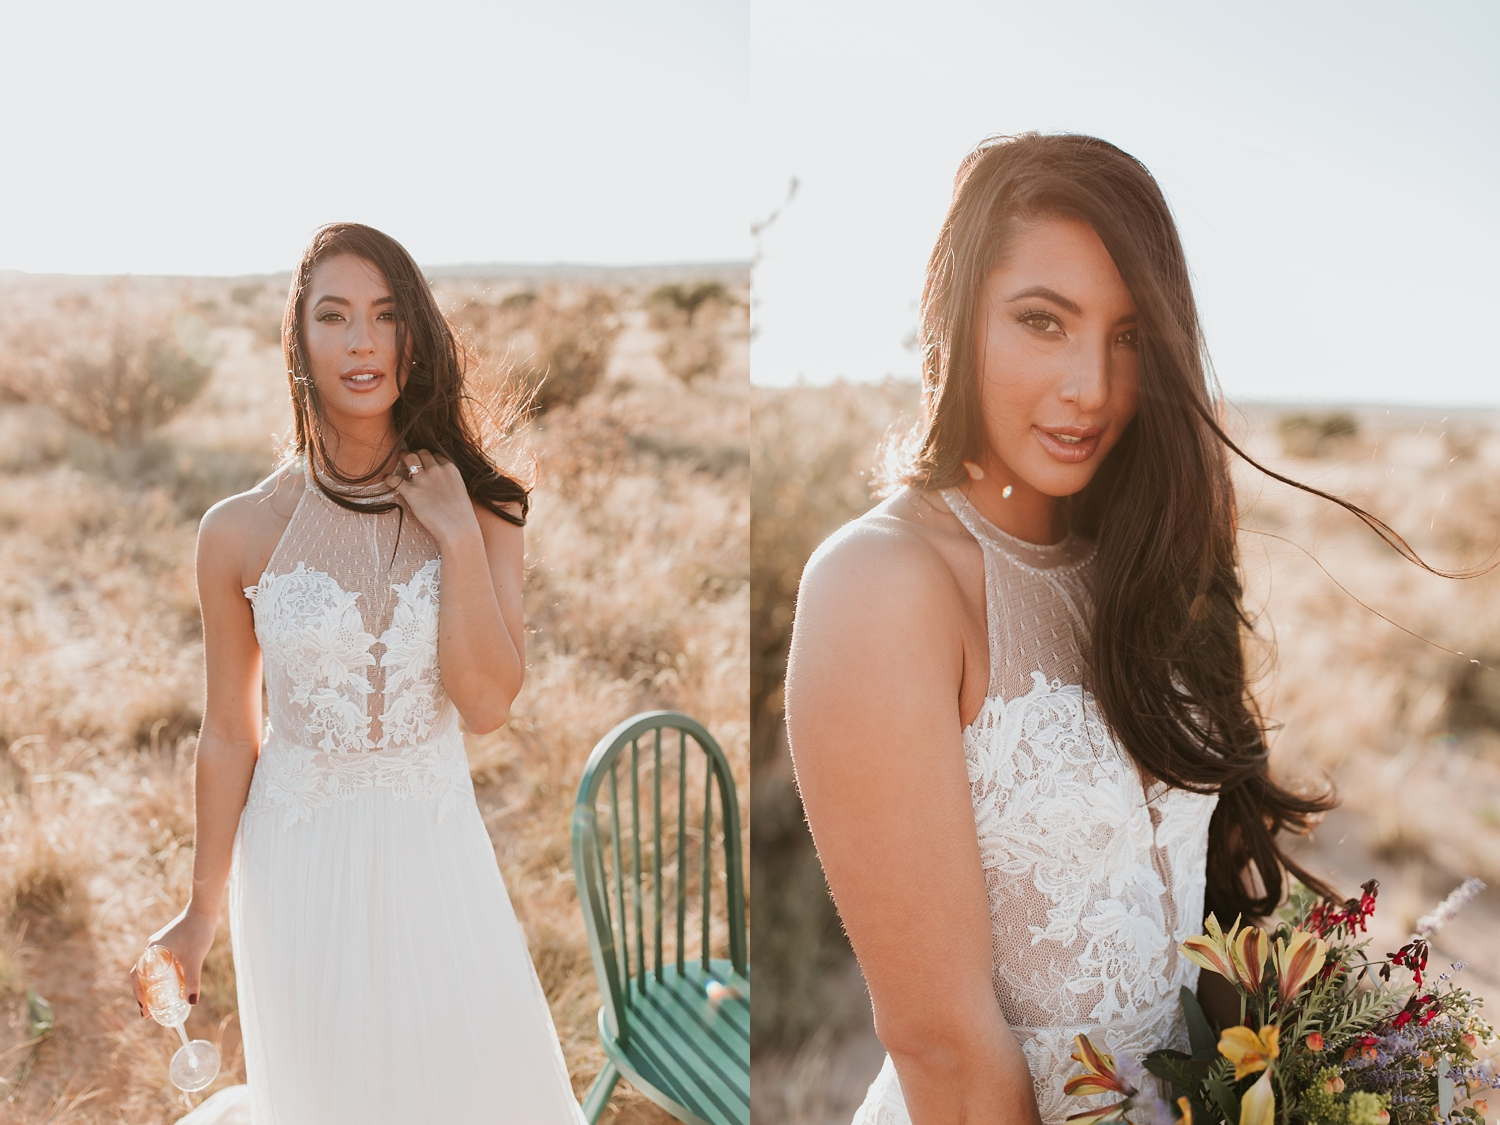 Alicia+lucia+photography+-+albuquerque+wedding+photographer+-+santa+fe+wedding+photography+-+new+mexico+wedding+photographer+-+new+mexico+bride+-+southwest+bridal+session+-+desert+bridal+session+-+santa+fe+bride+-+albuquerque+bride_0013.jpg